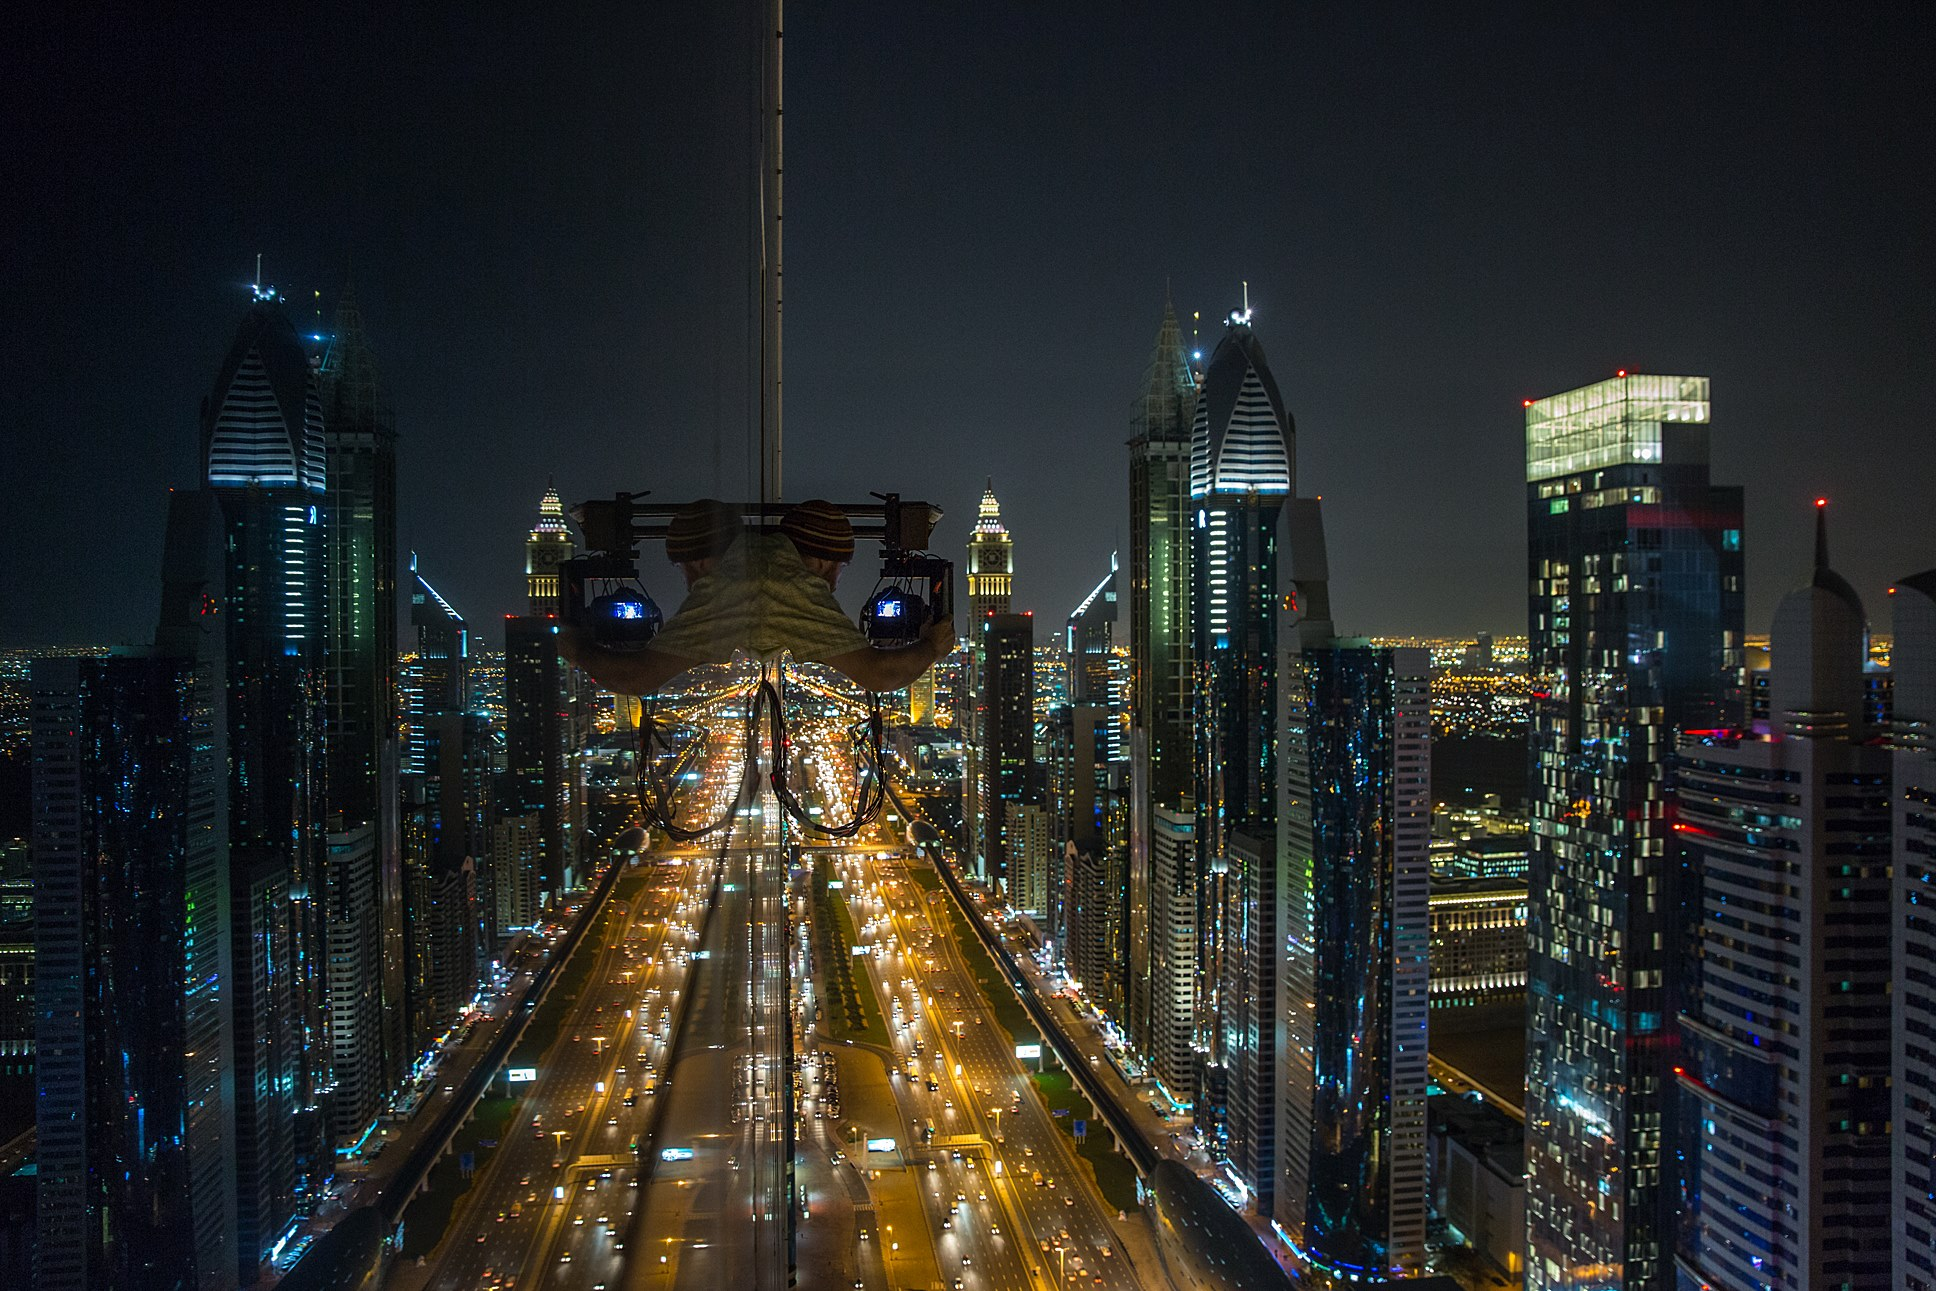 Dubai, UAE 2014. Photo by Sebastian Opitz